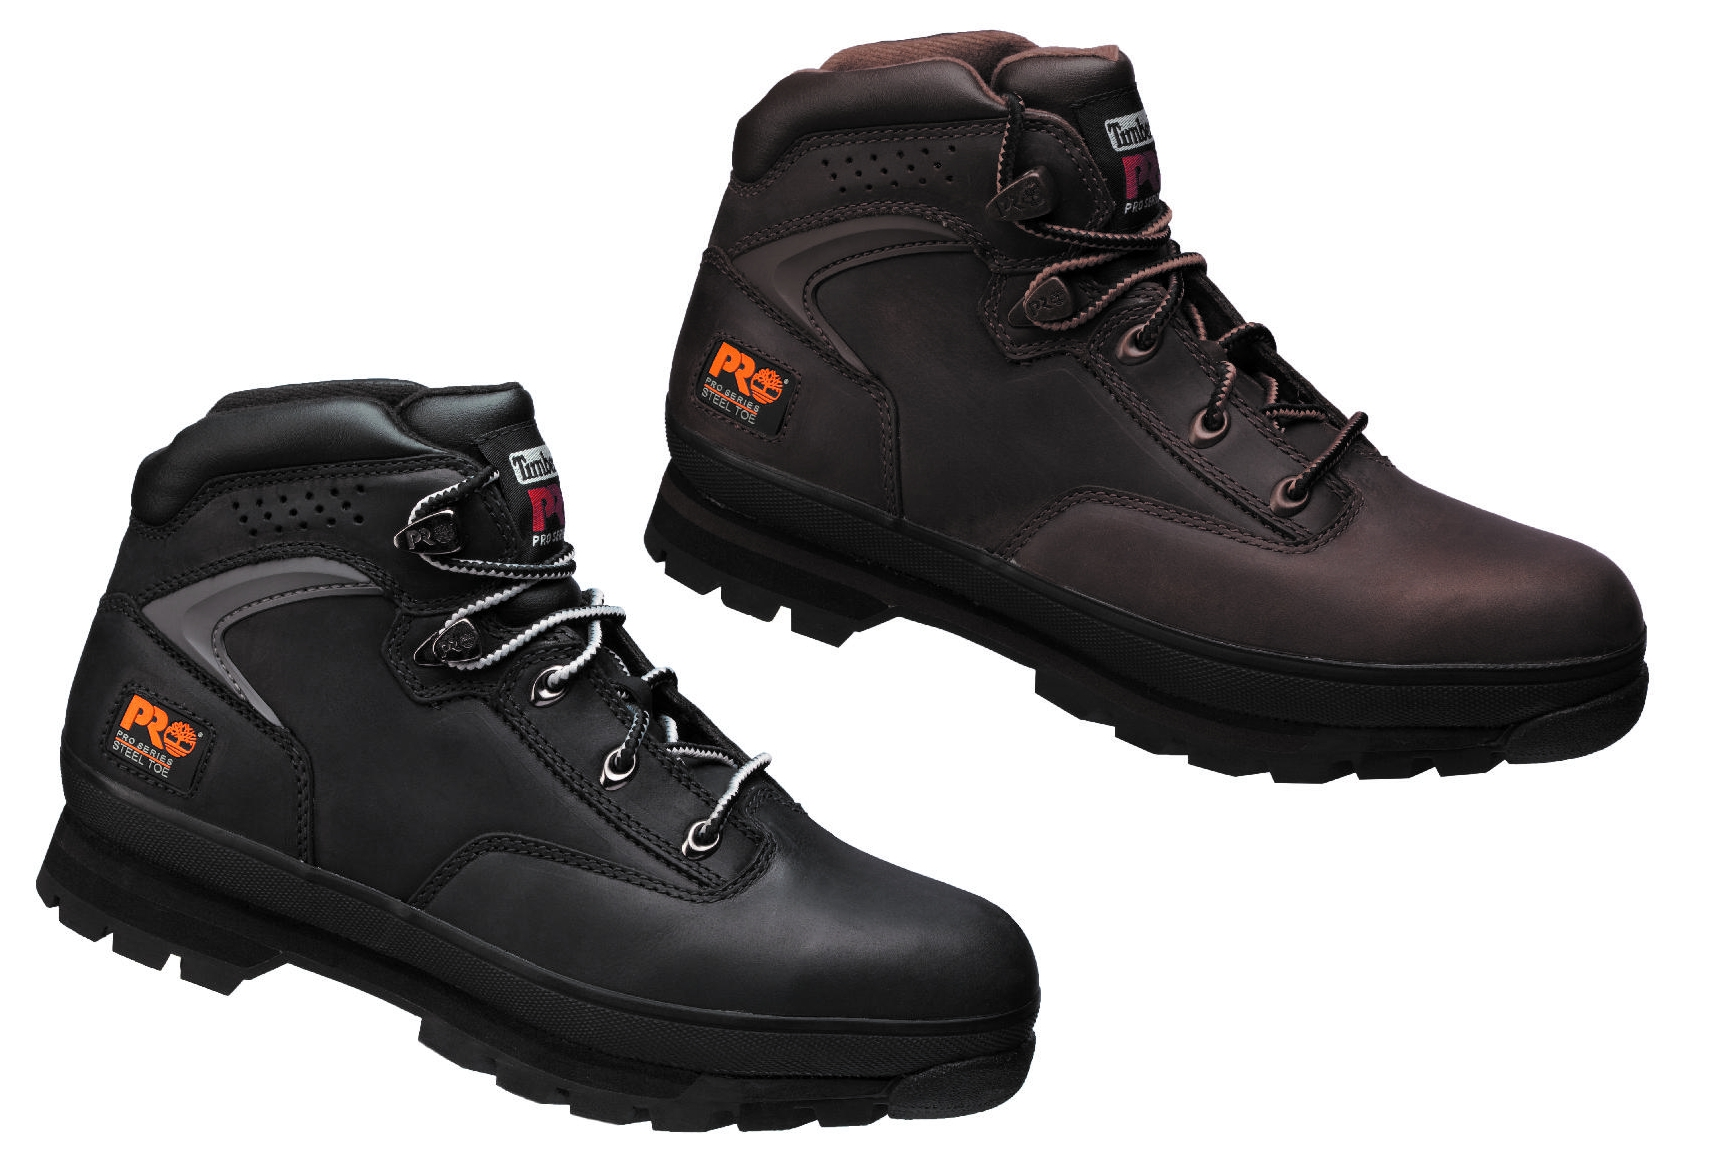 timberland pro steel toe work safety boots hiker